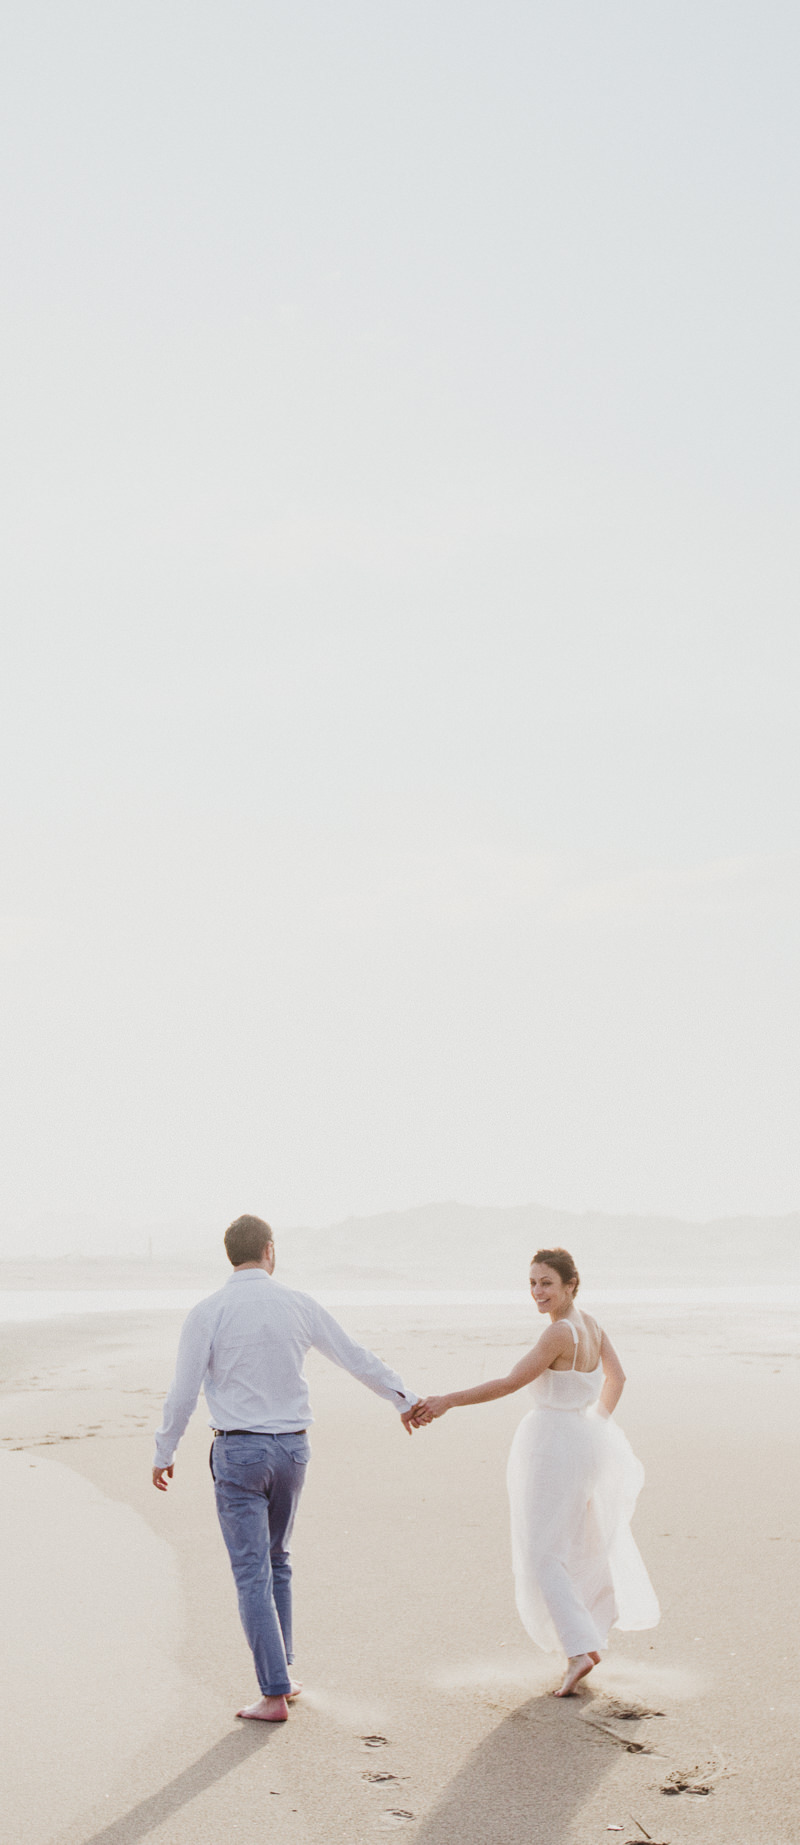 Sebastien Boudot Wedding Photographer in the South of France